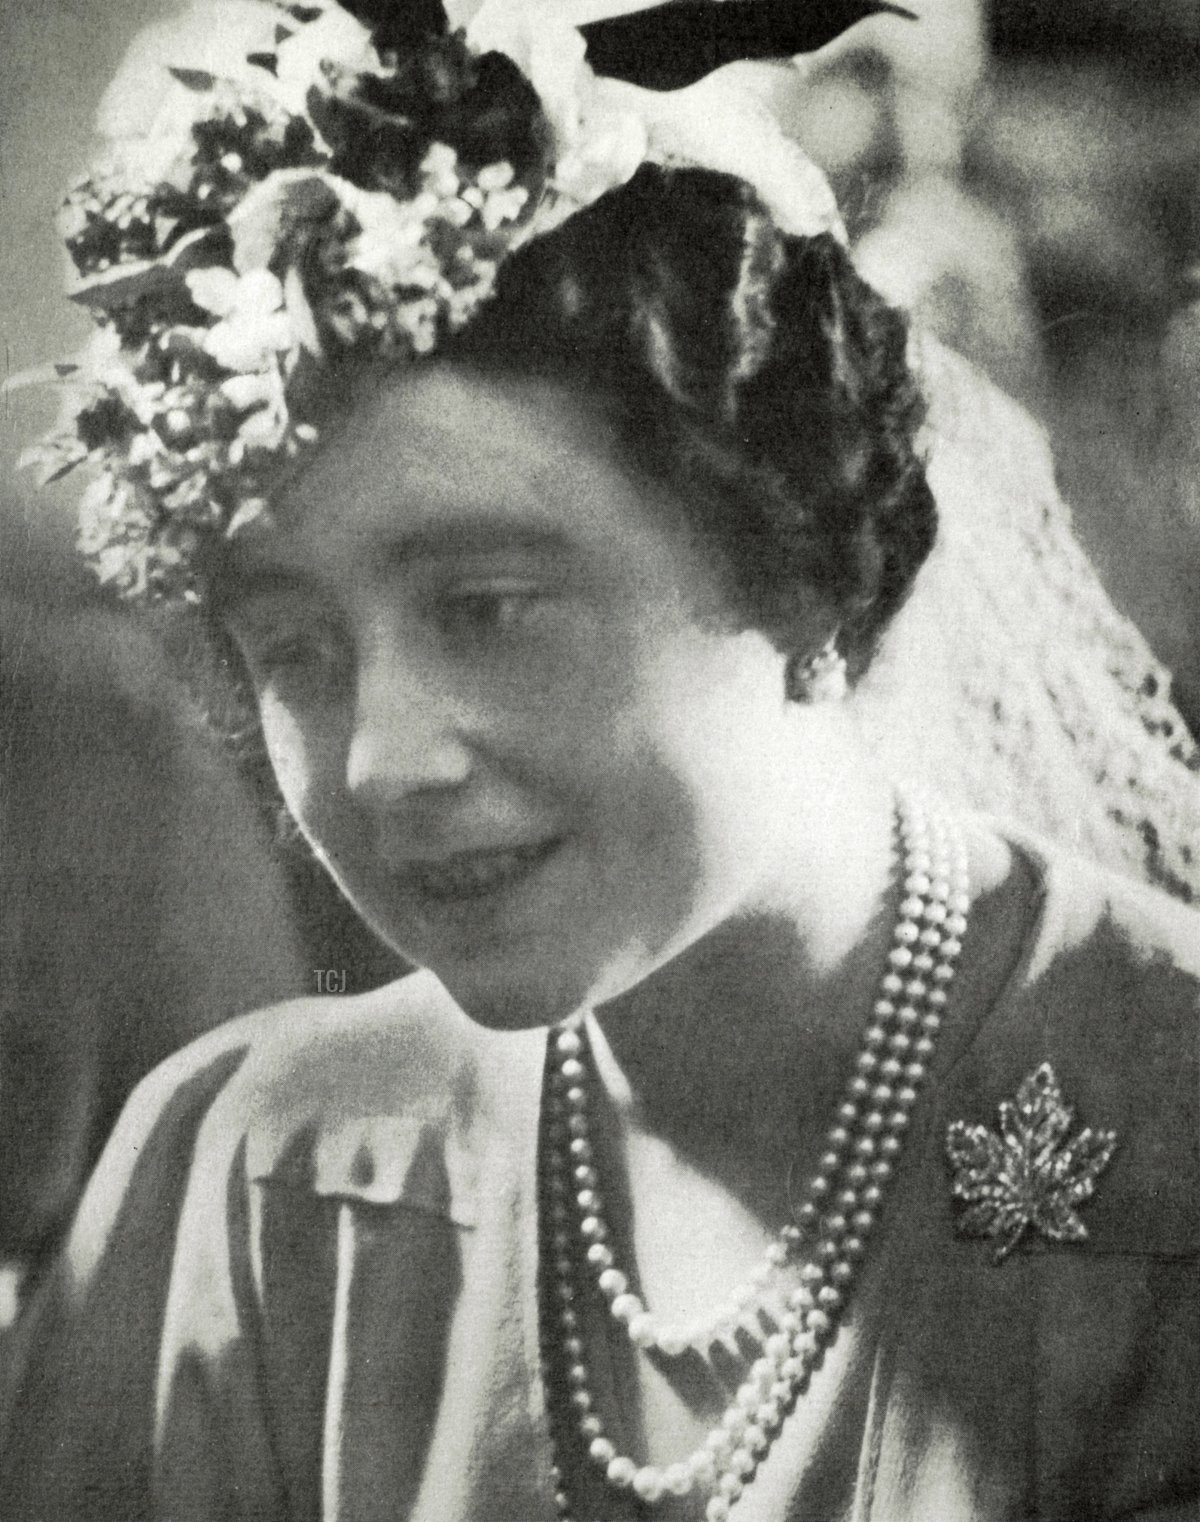 Queen Elizabeth wears the maple leaf brooch given to her by her husband King George VI, to mark their visit to Canada on June, 4, 1939 in Winnipeg